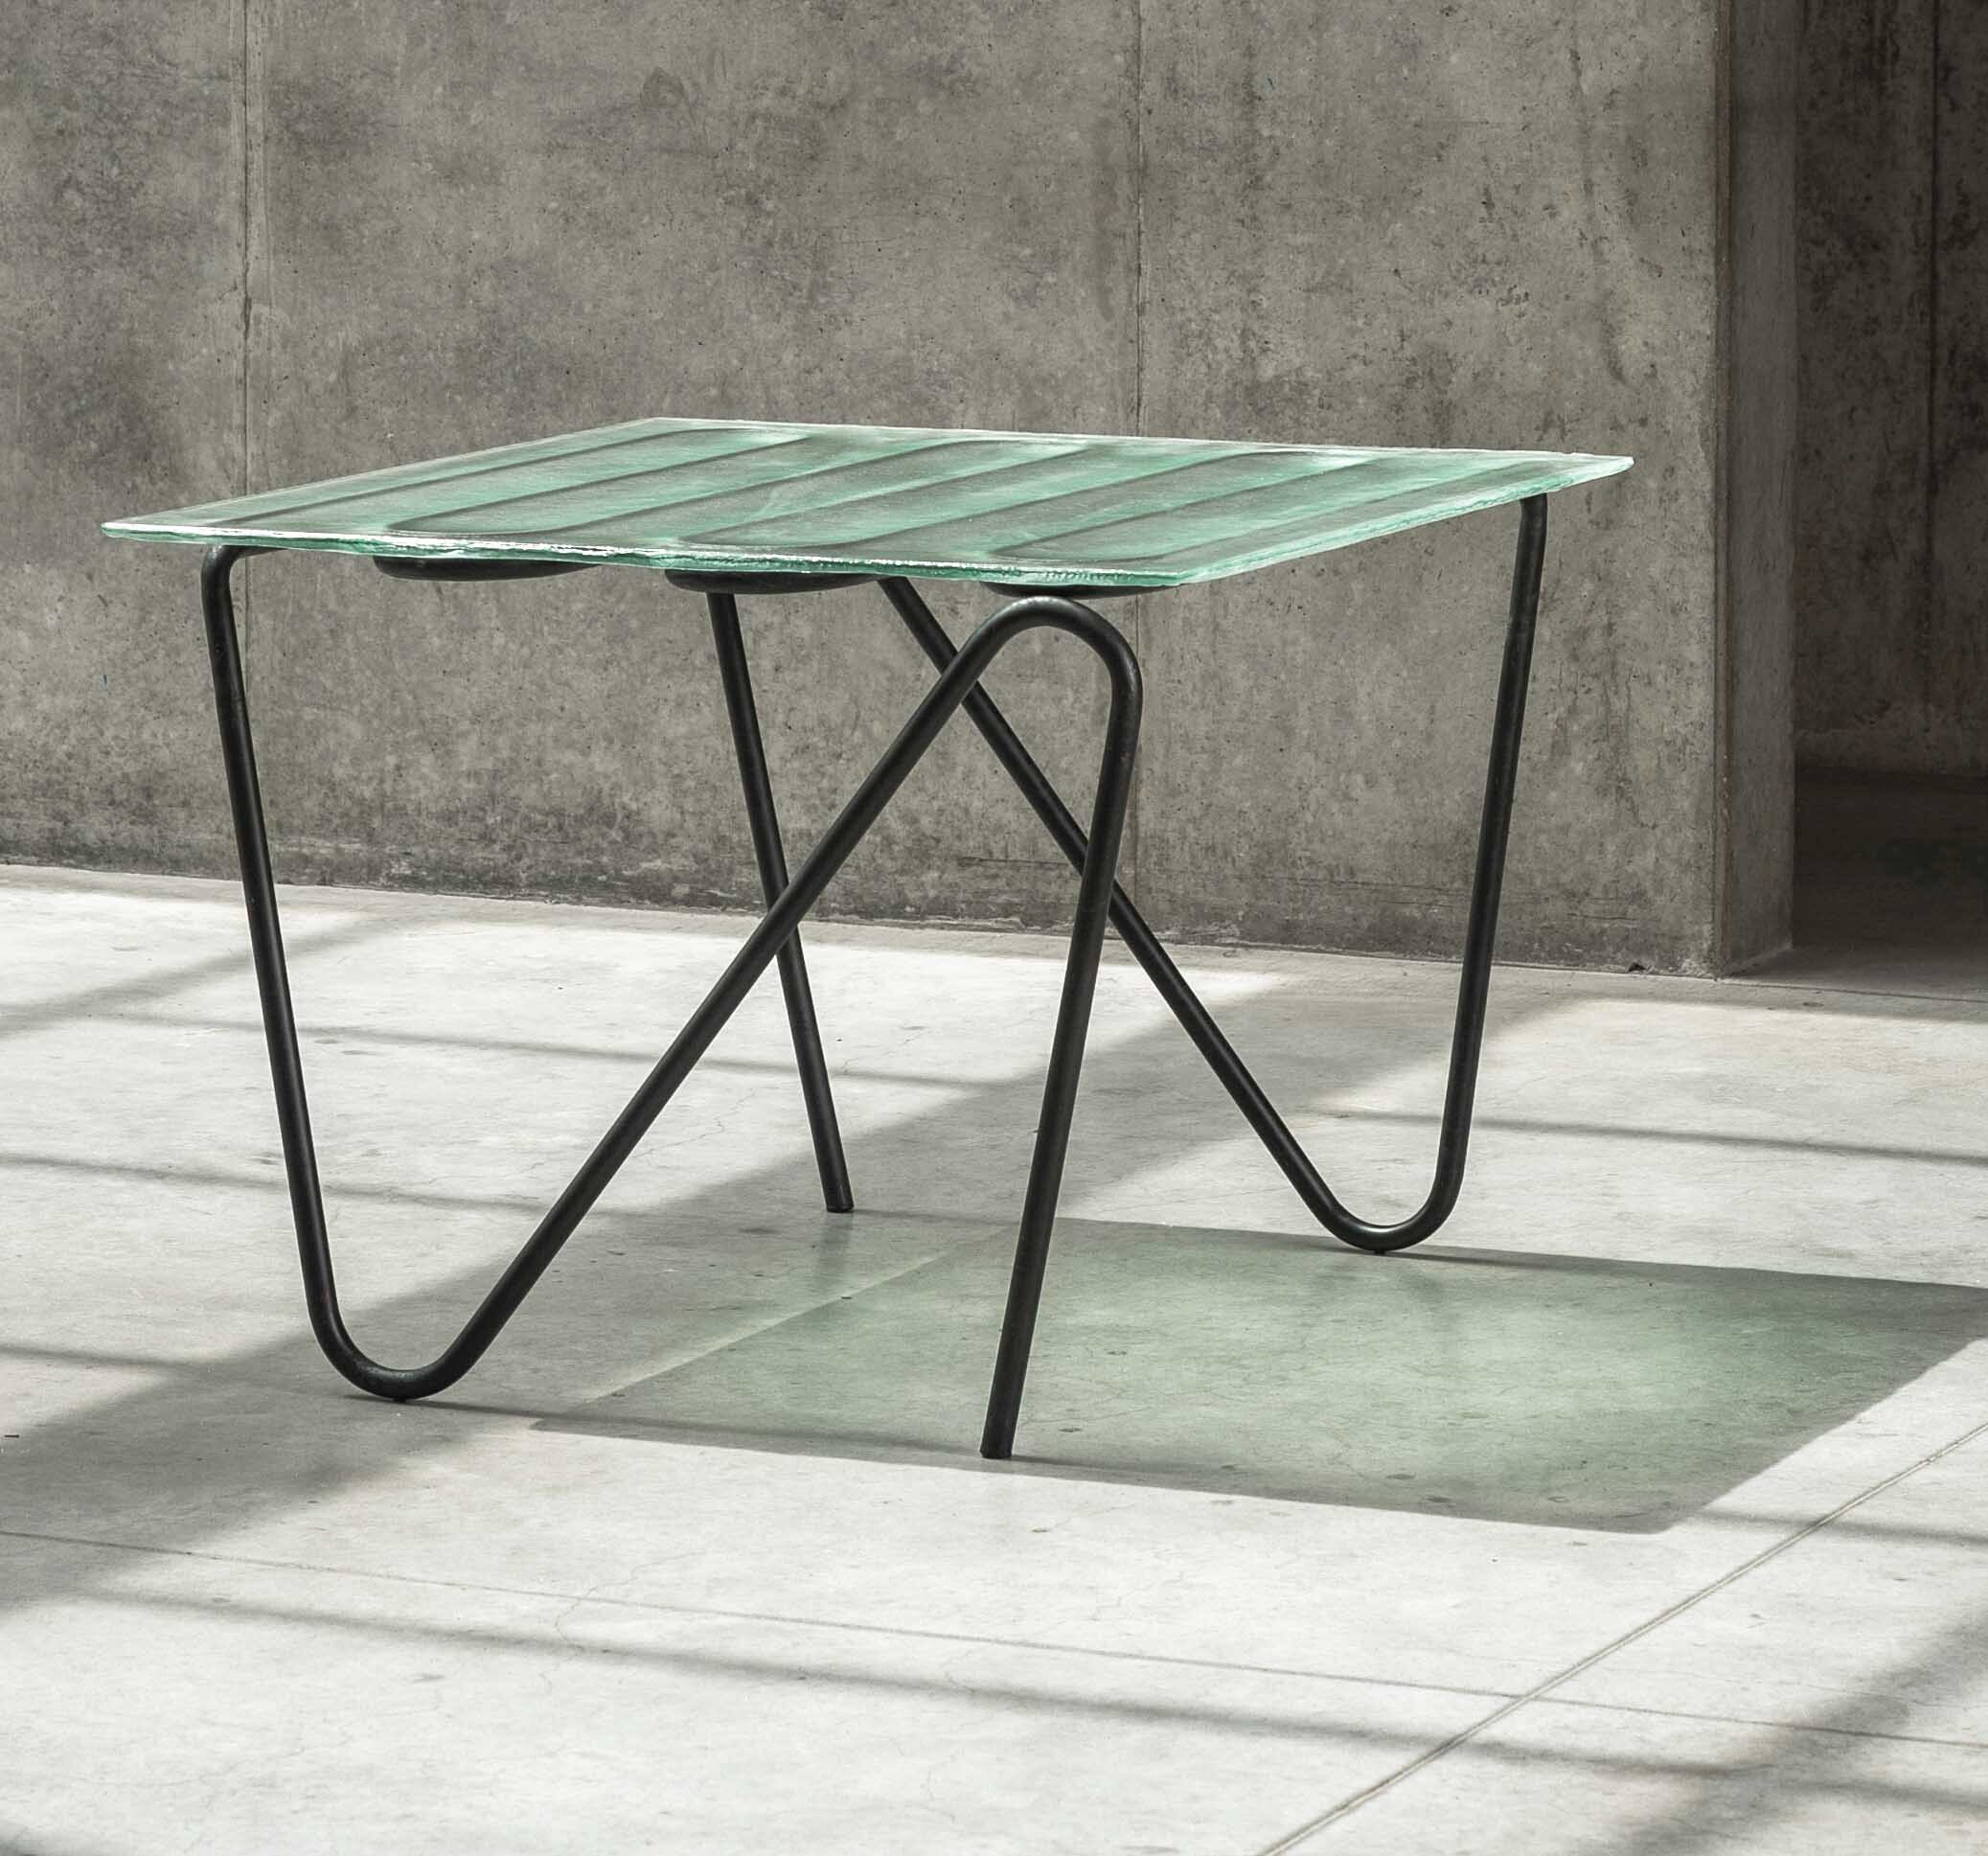 PULSE TABLE